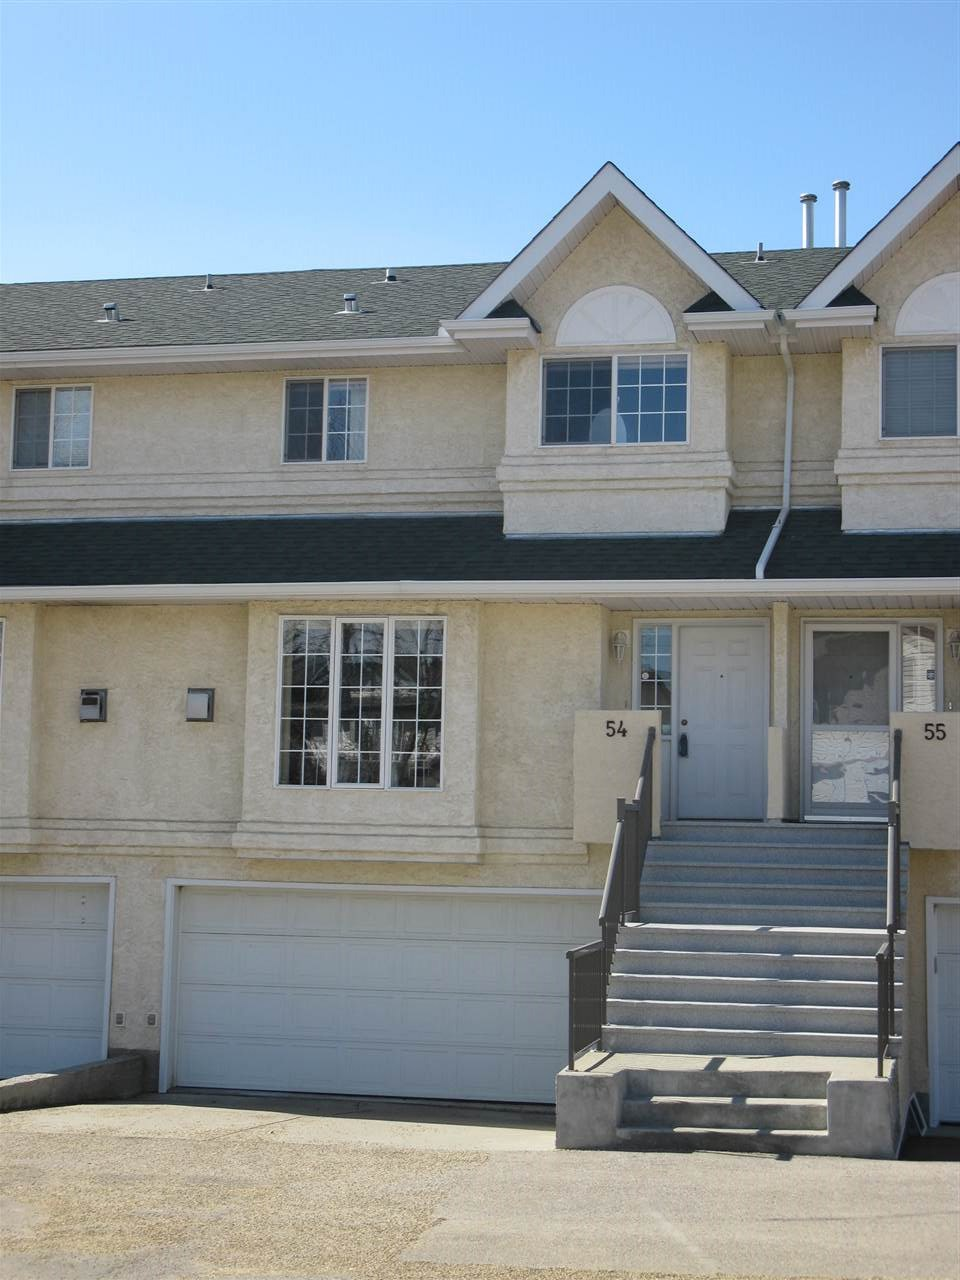 MLS® listing #E4142401 for sale located at 54 2419 133 Avenue